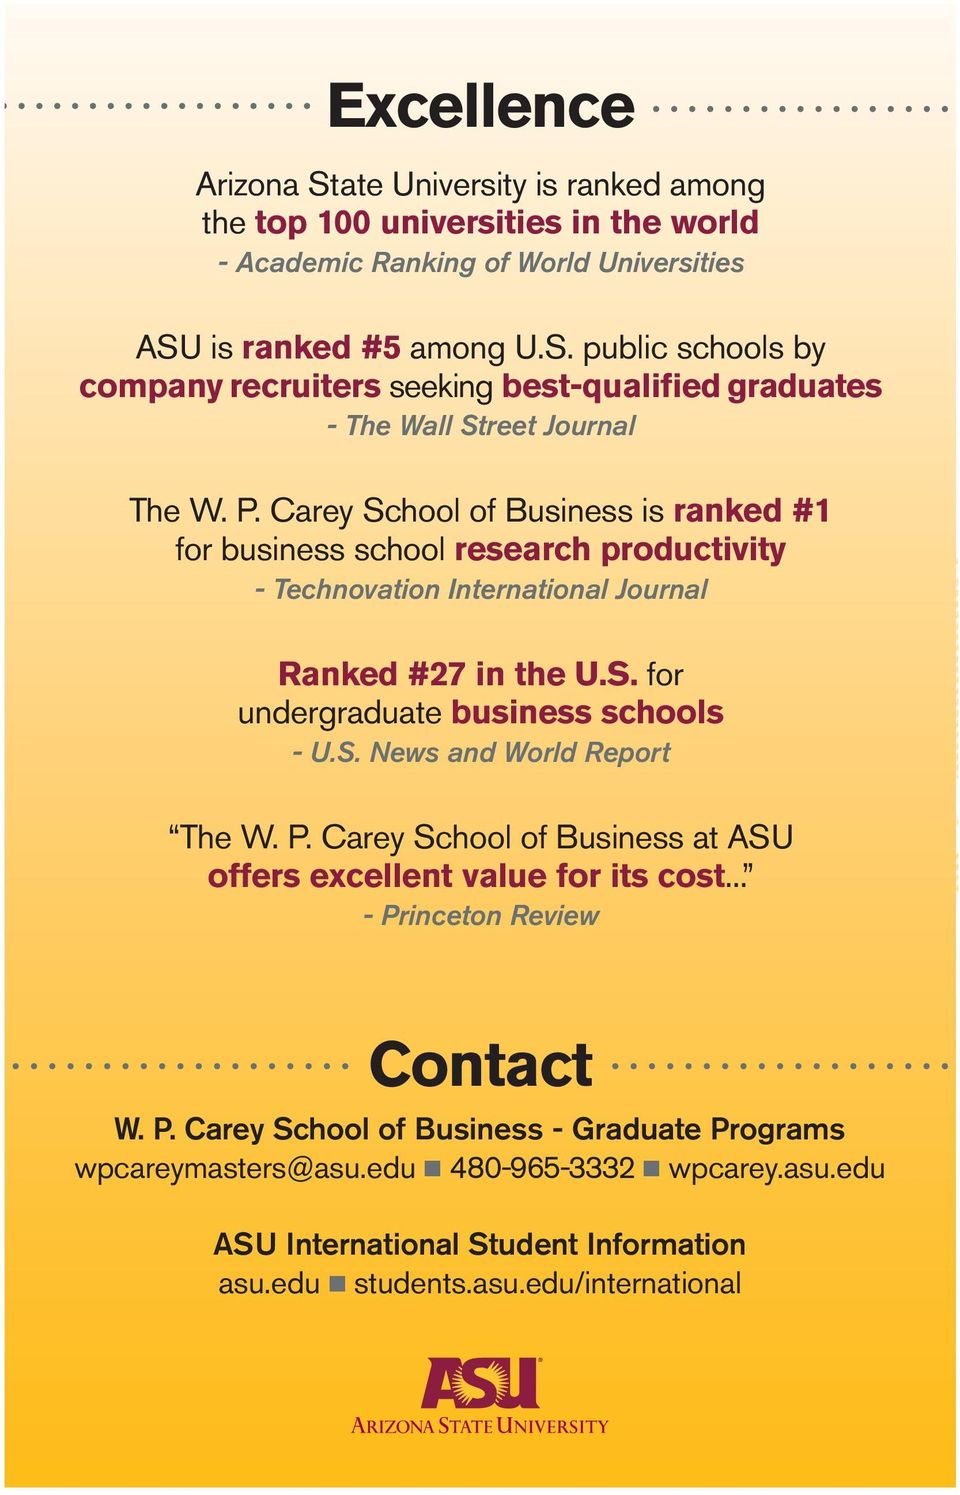 P. Carey School of Business at ASU offers excellent value for its cost... - Princeton Review Contact W. P. Carey School of Business - Graduate Programs wpcareymasters@asu.